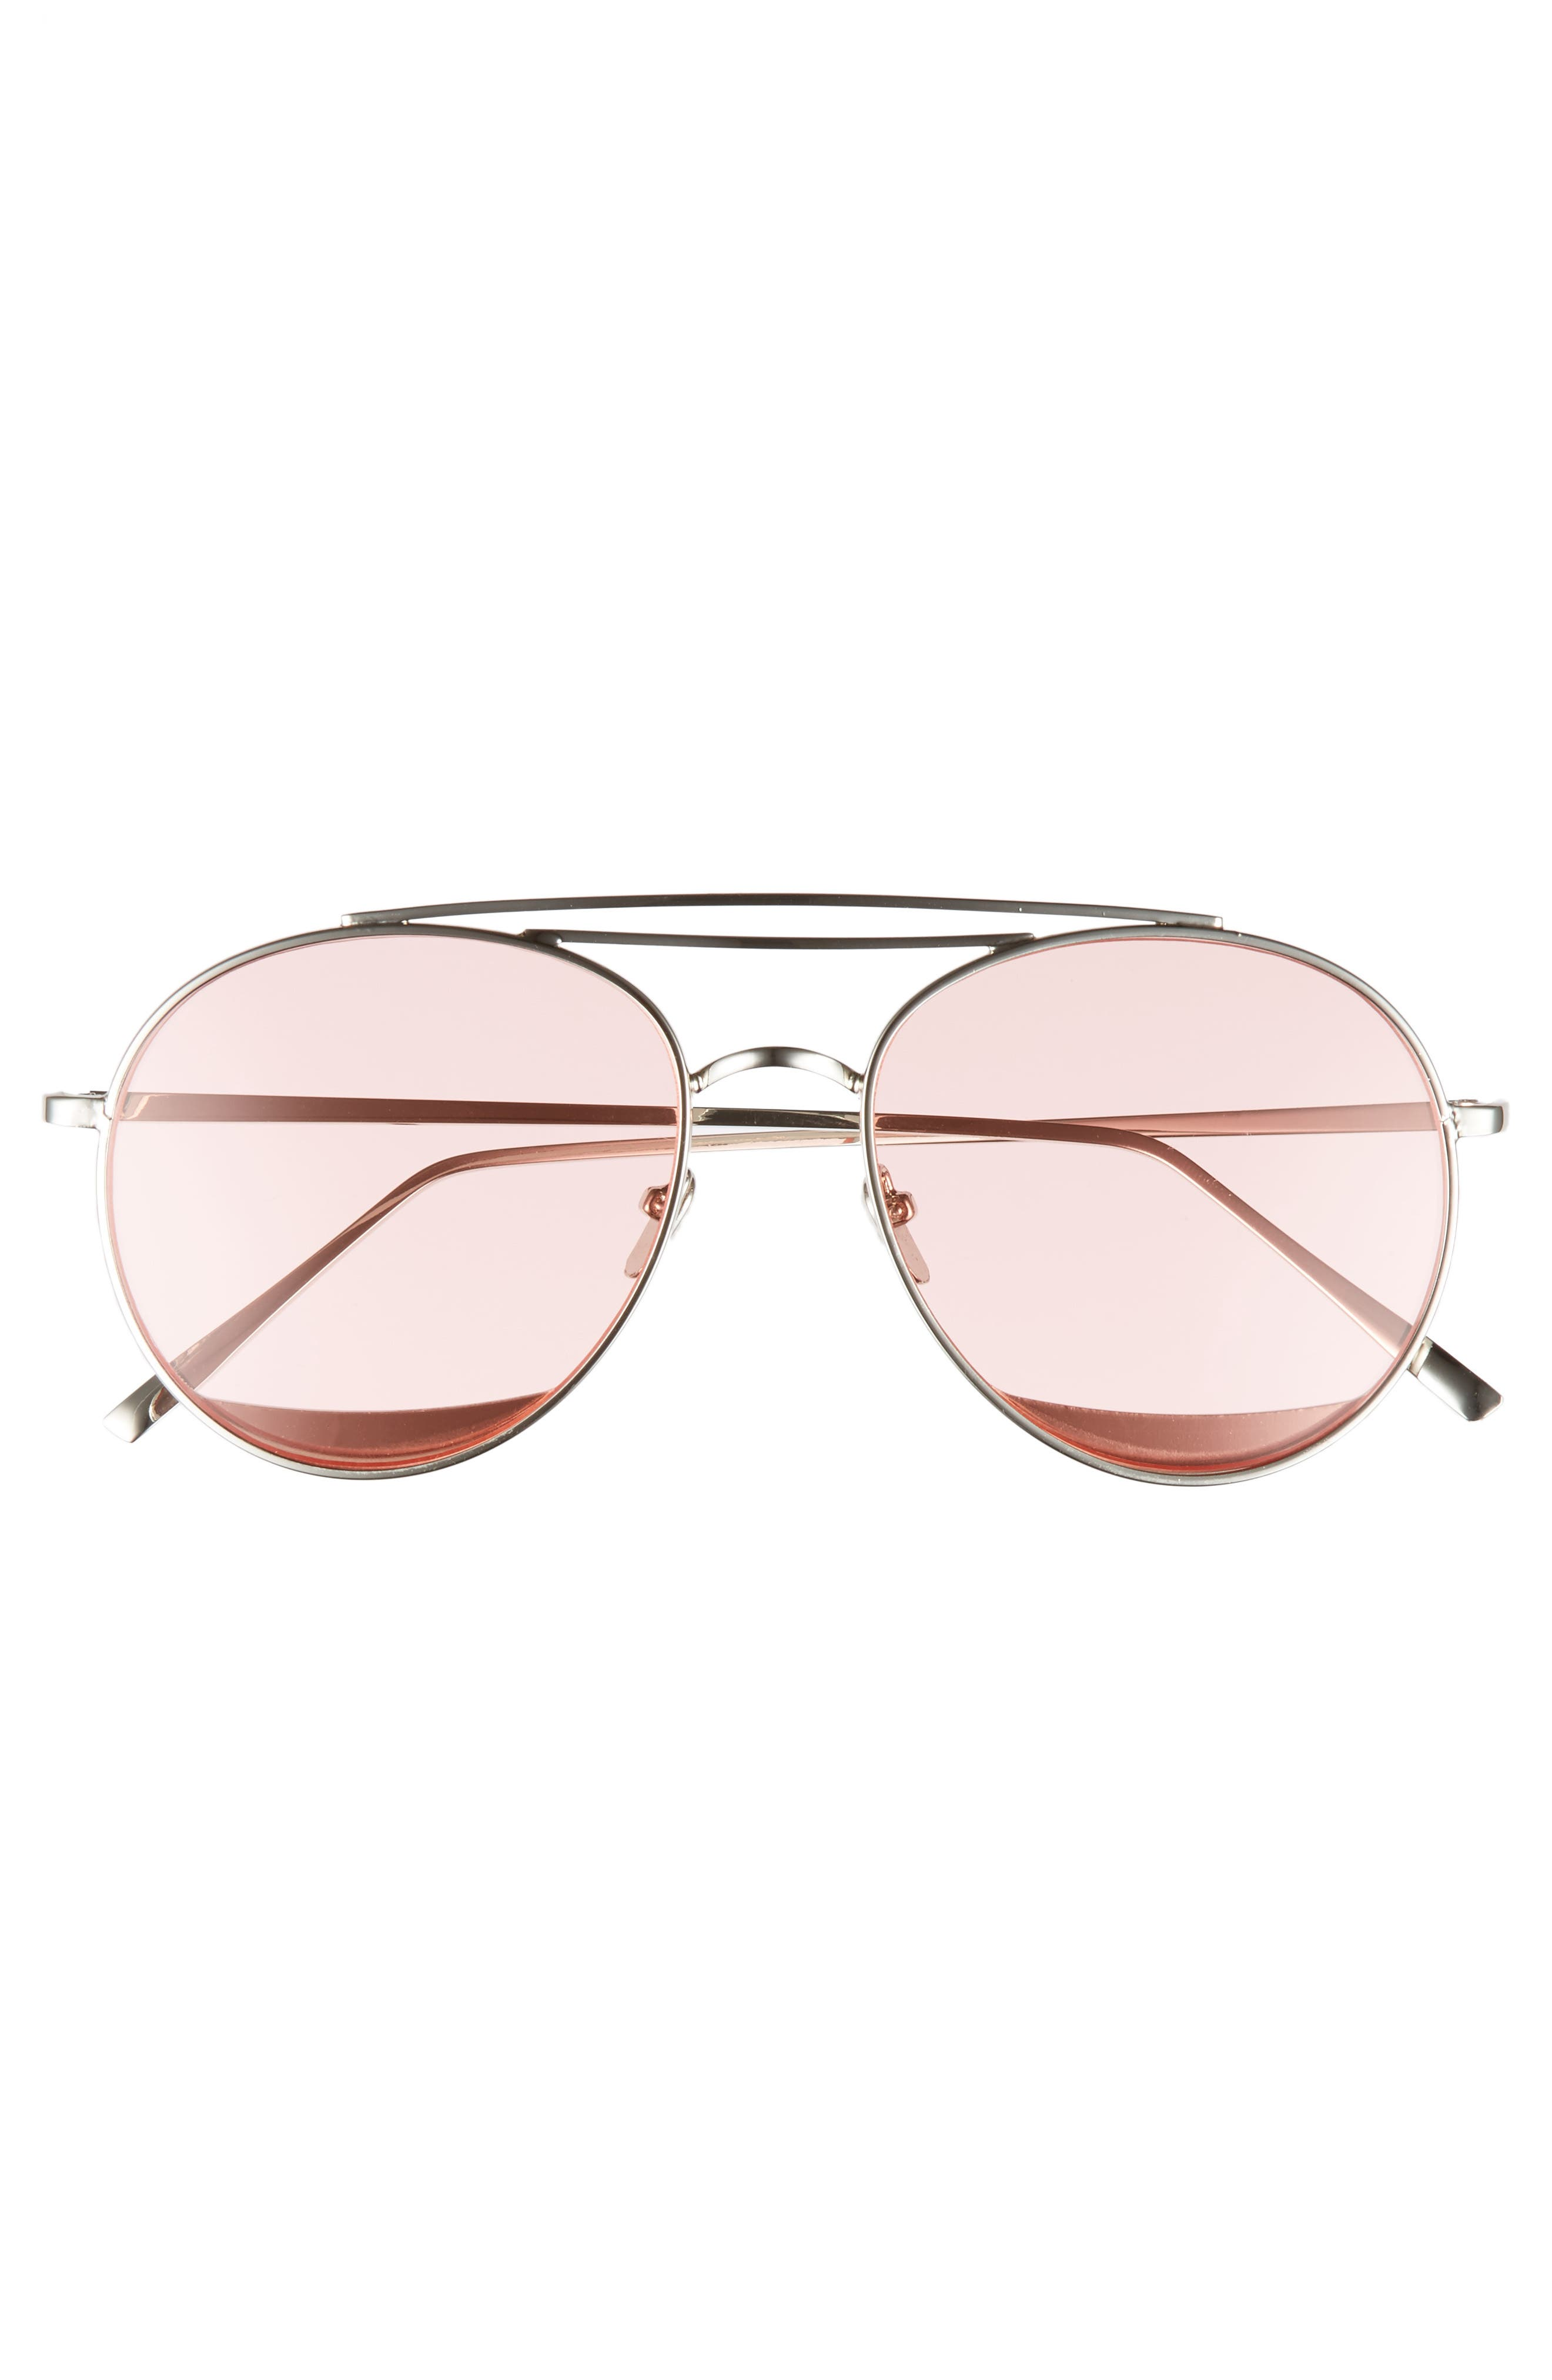 SHADY LADY,                             The Maddox 62mm Rimless Aviator Sunglasses,                             Alternate thumbnail 3, color,                             650